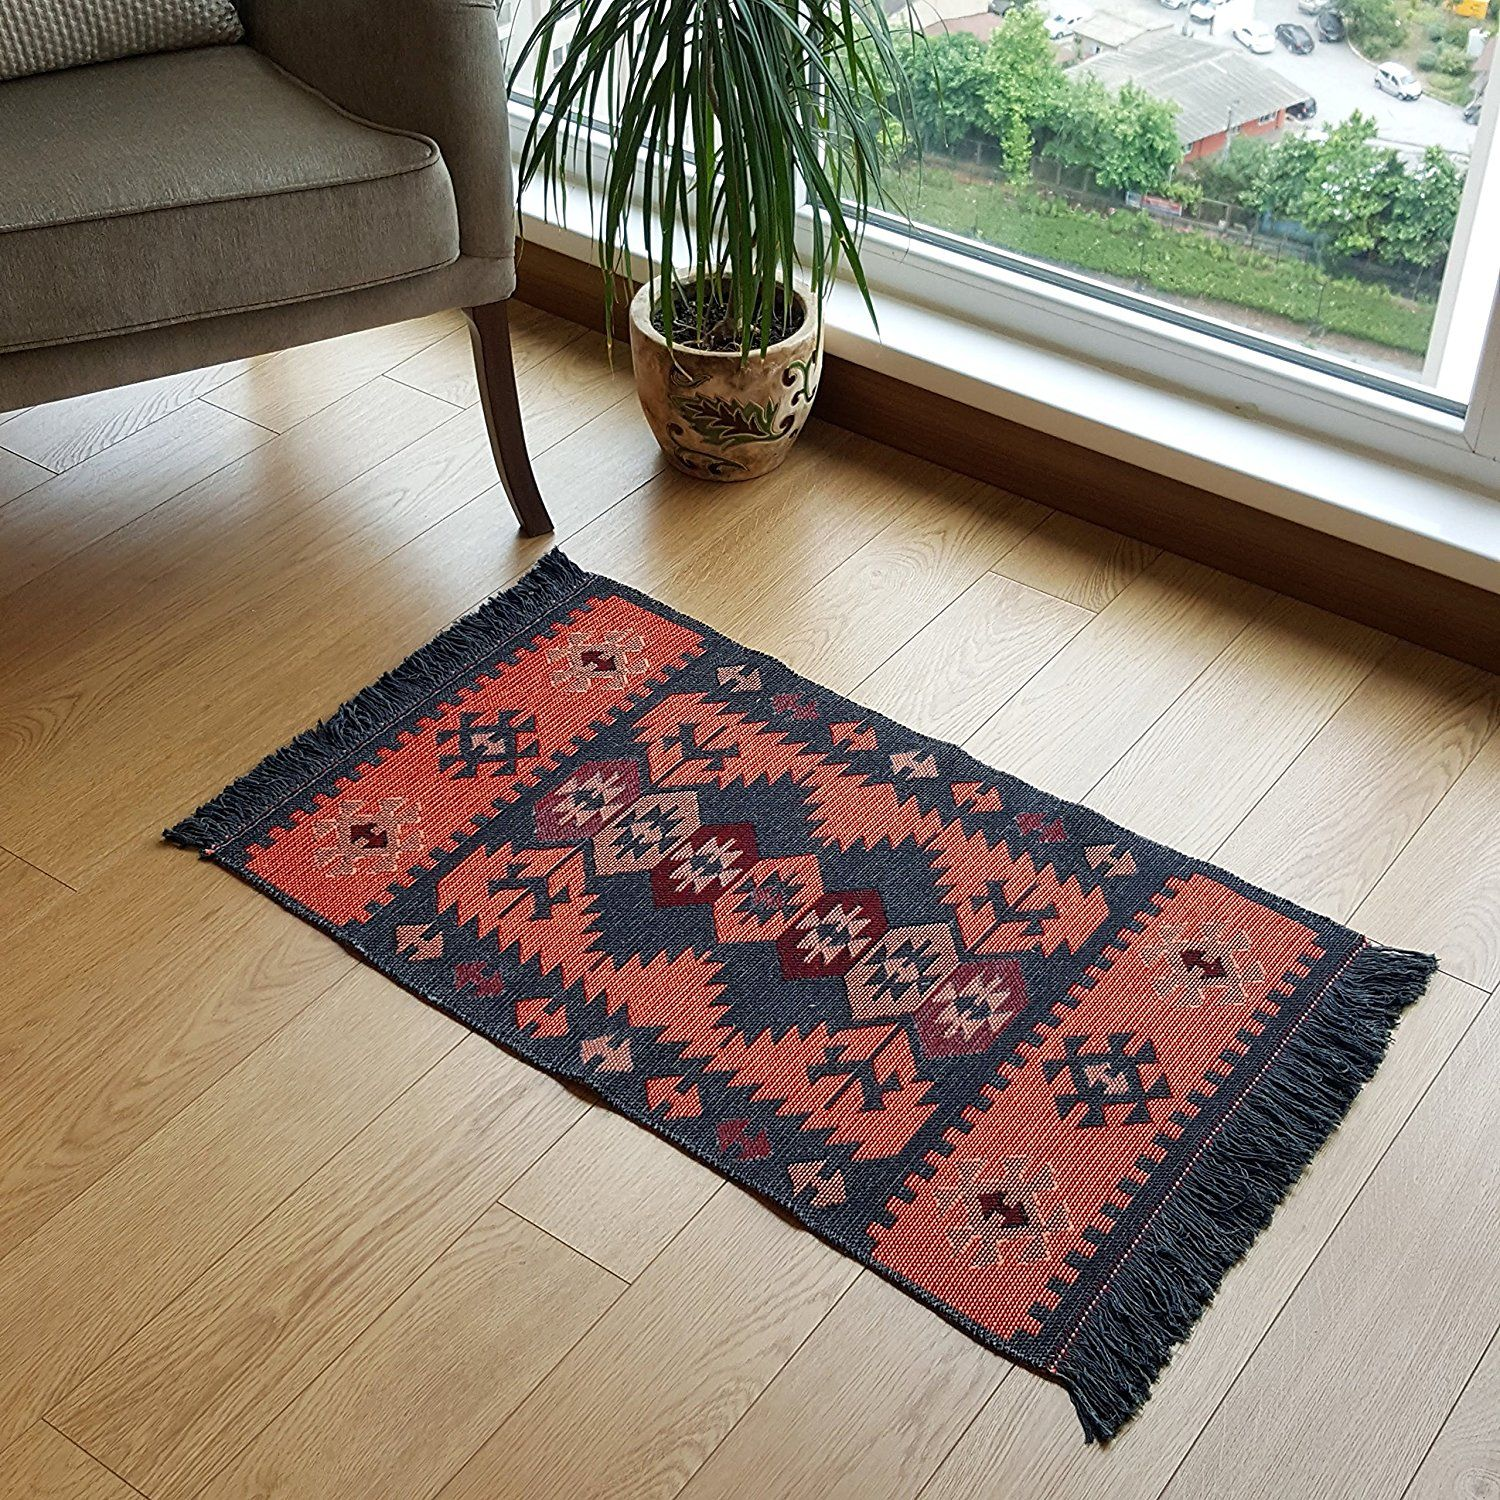 Modern bohemian style small area rug 2 x 3 feet washable natural dye colors two sided reversable perfect for kitchen hallway bathroom bedroom